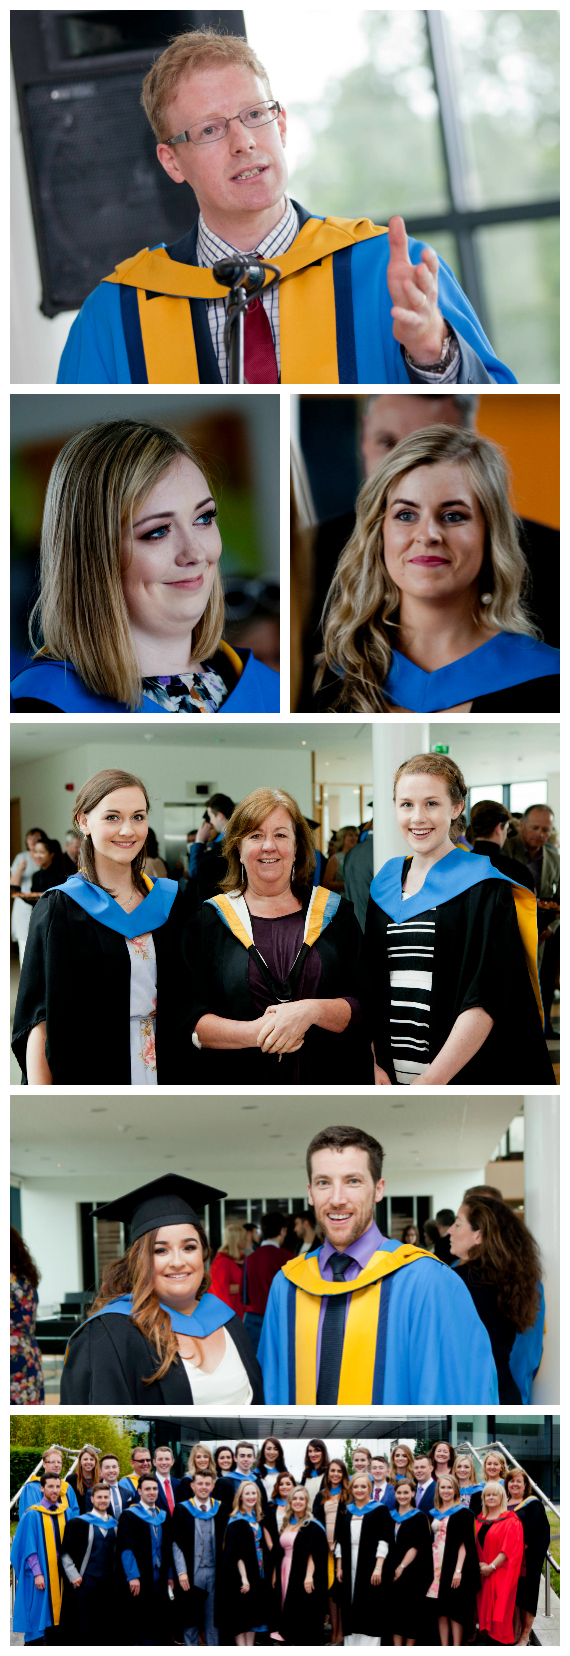 Selection of photographs from the 2016 Radiography Student Awards Reception at UCD